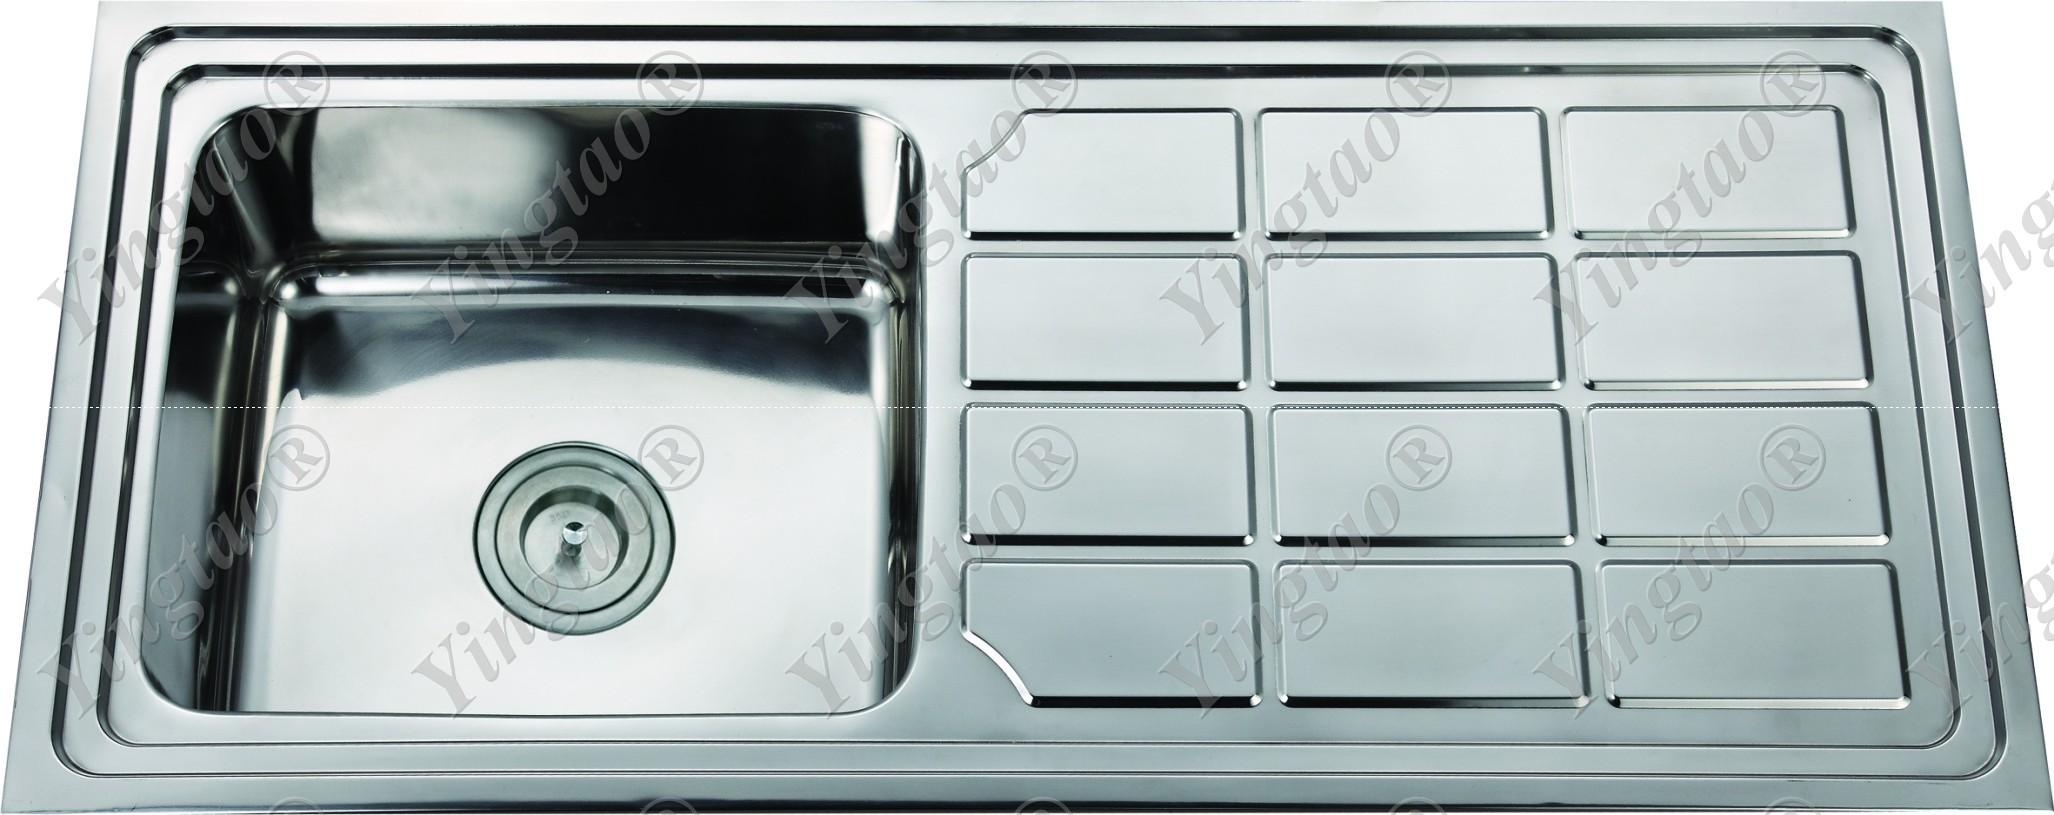 Stainless steel sink LS10046G